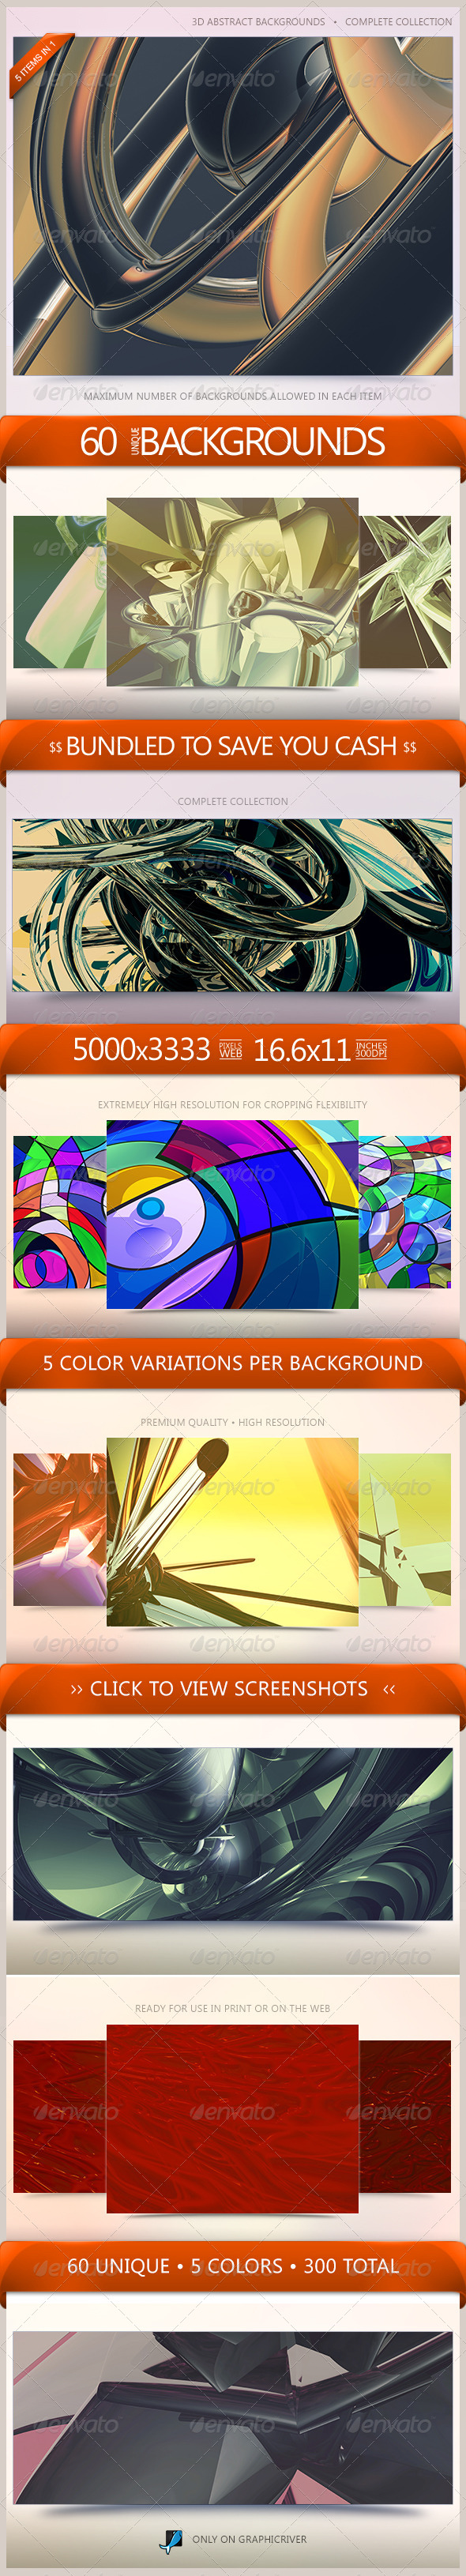 GraphicRiver 3D Abstract Backgrounds Bundle 5507893